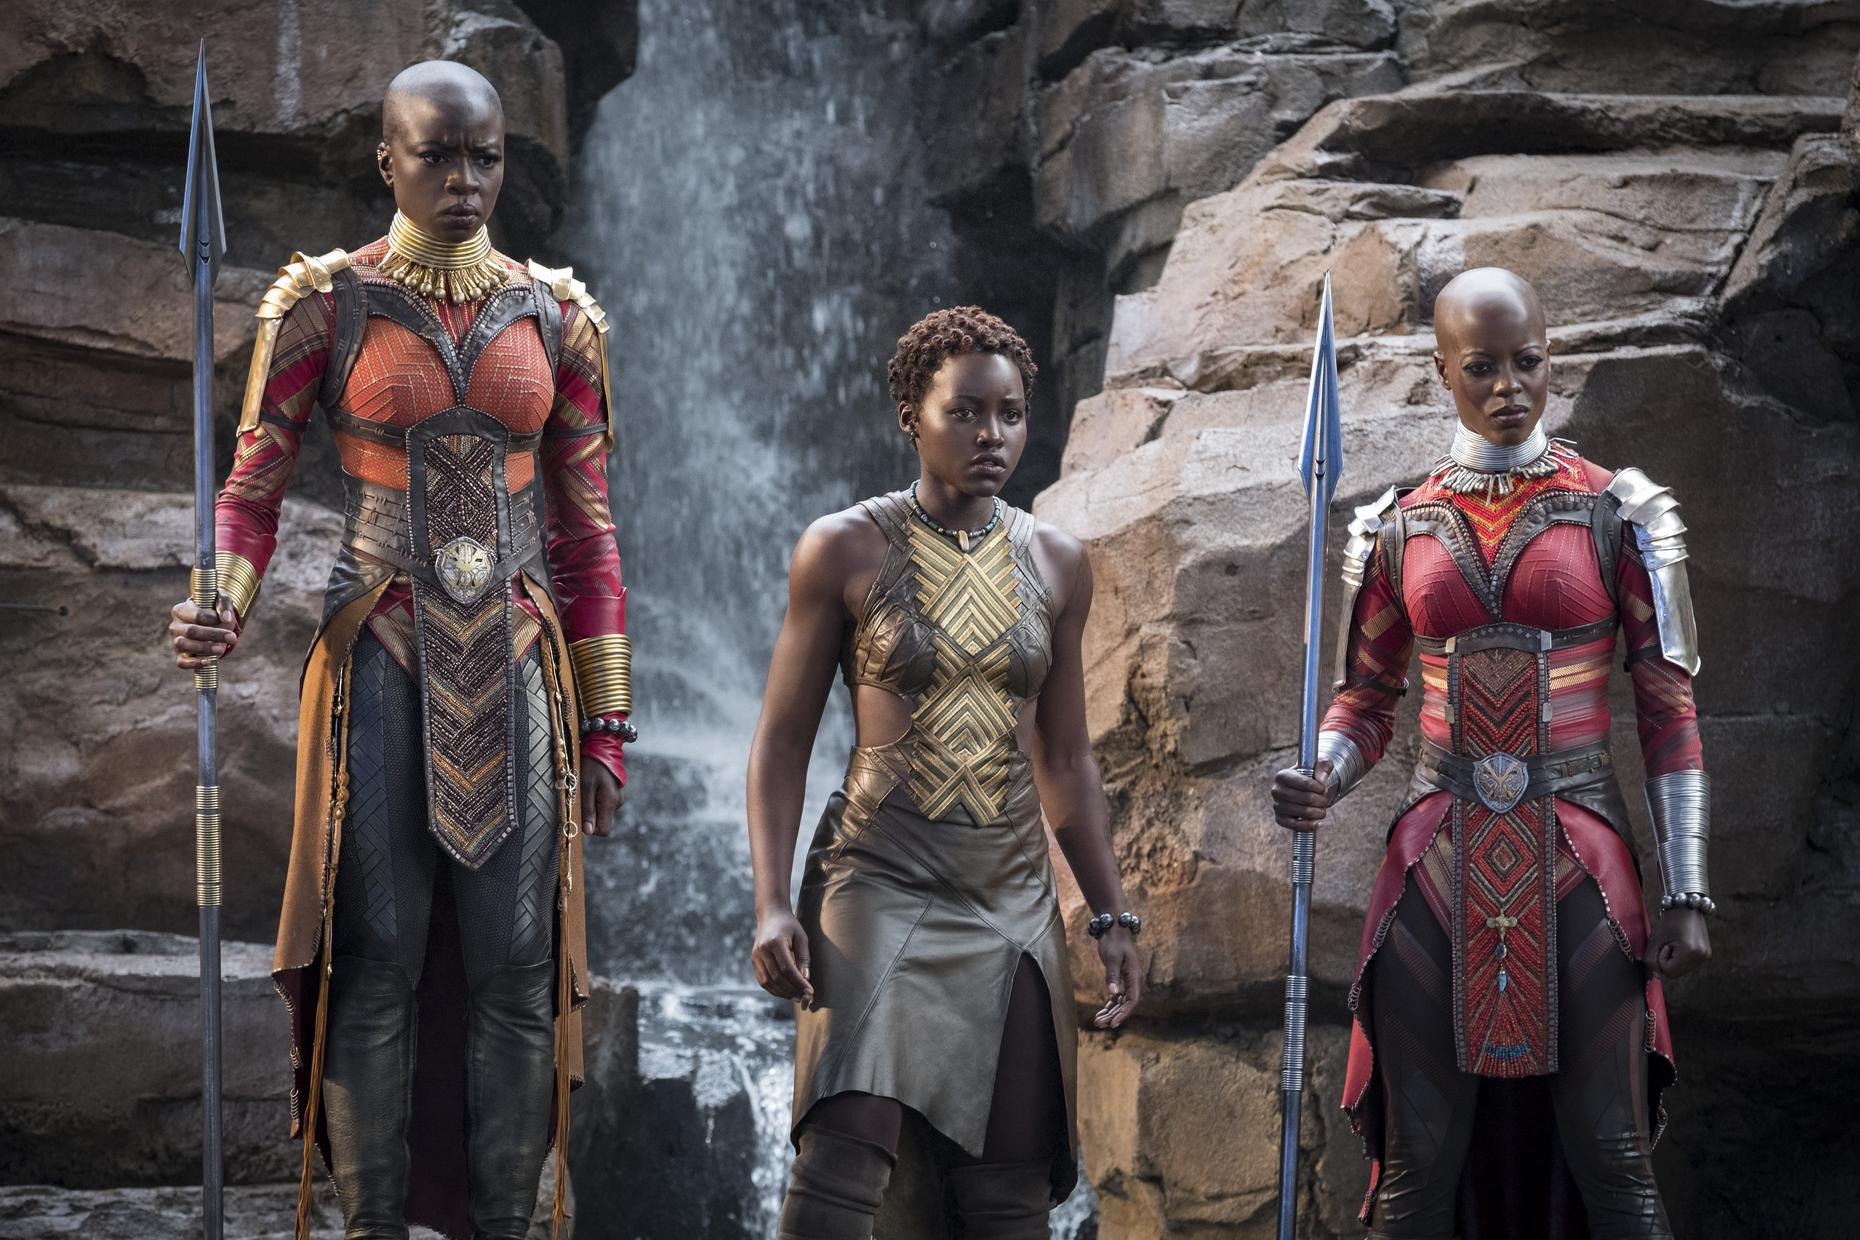 Three armor clad women from Wakanda